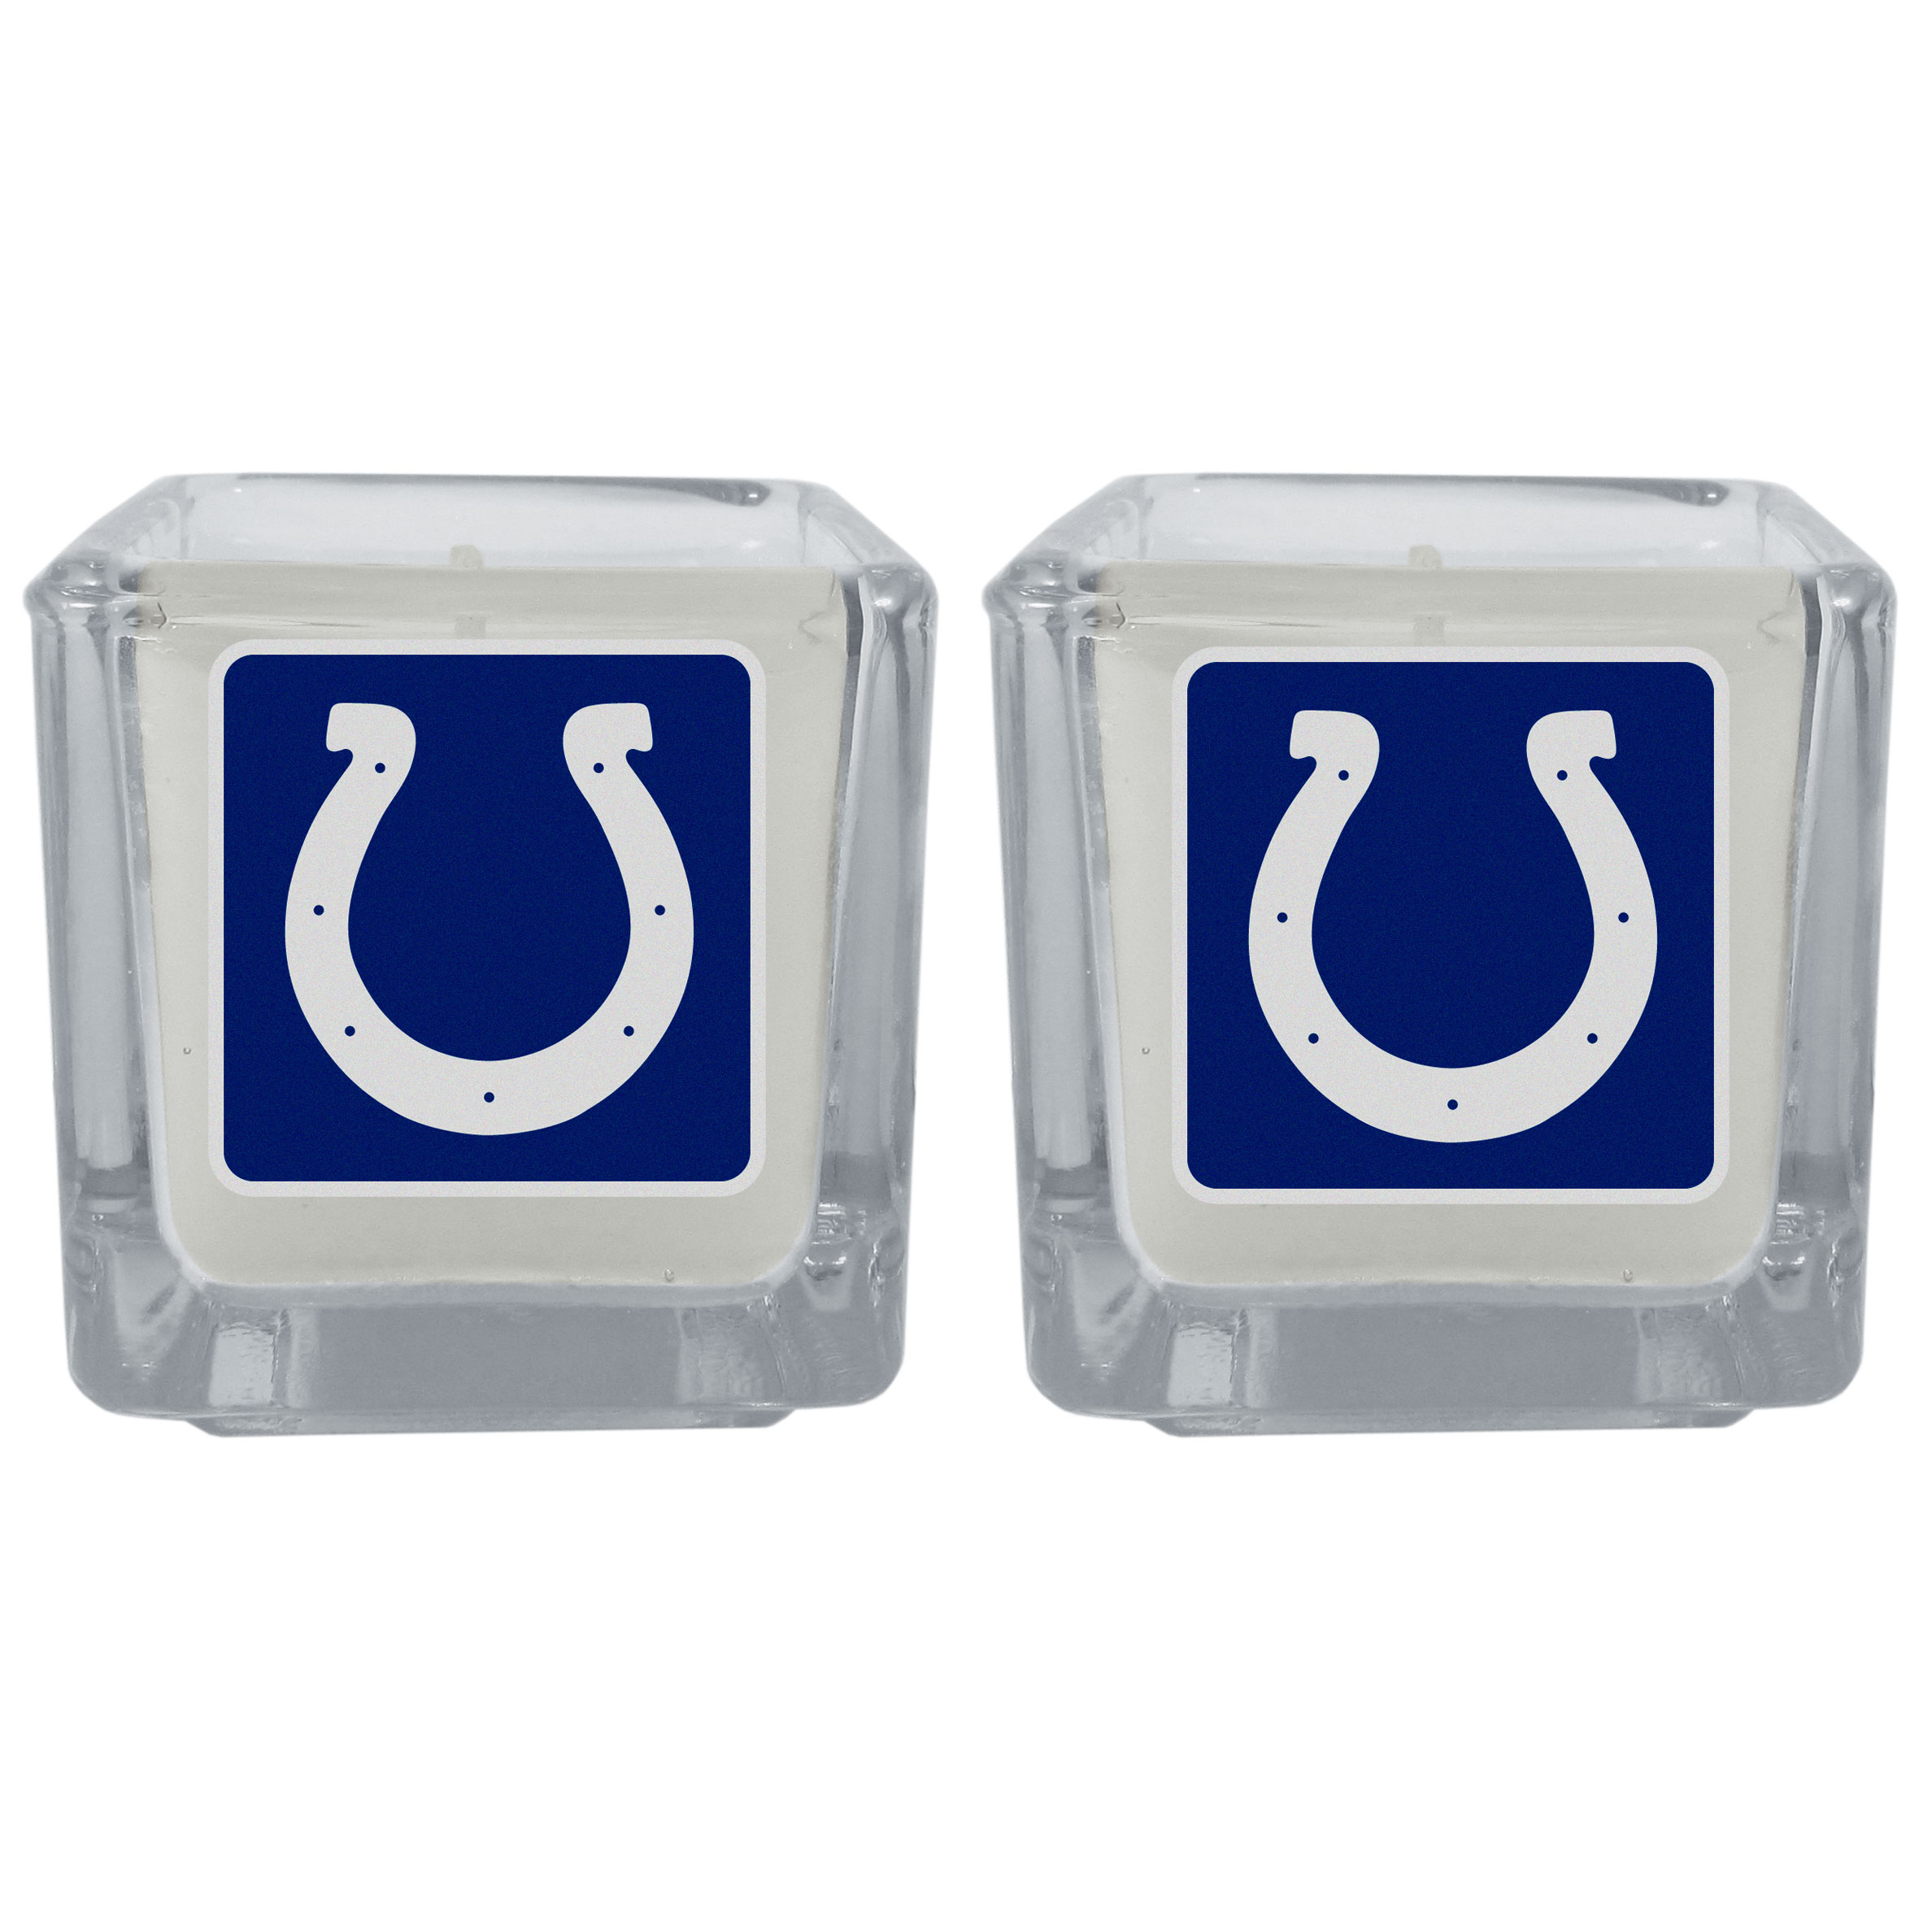 Indianapolis Colts Graphics Candle Set - Our candle set features 2 lightly vanilla scented candles with the Indianapolis Colts logo expertly printed on front. The candles are 2 inches tall in the votive style.